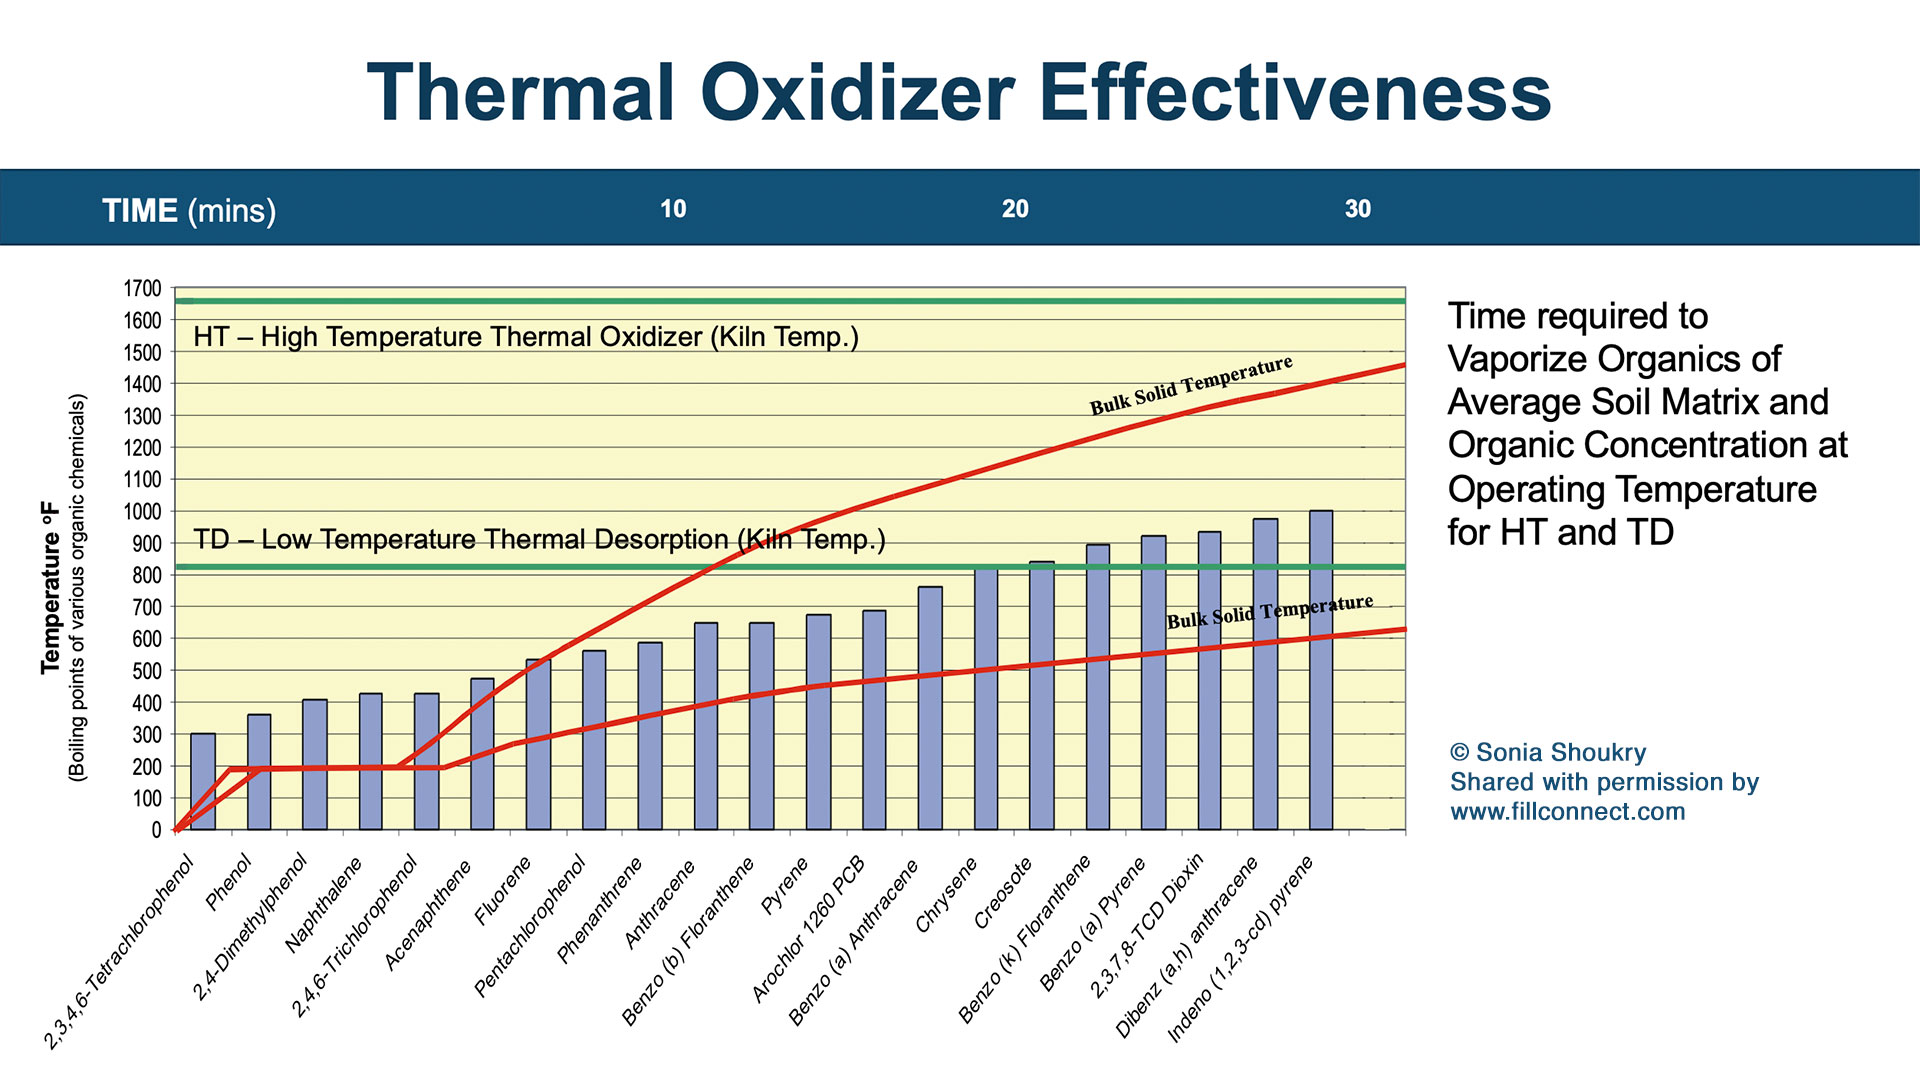 Thermal Oxidizer Effectiveness